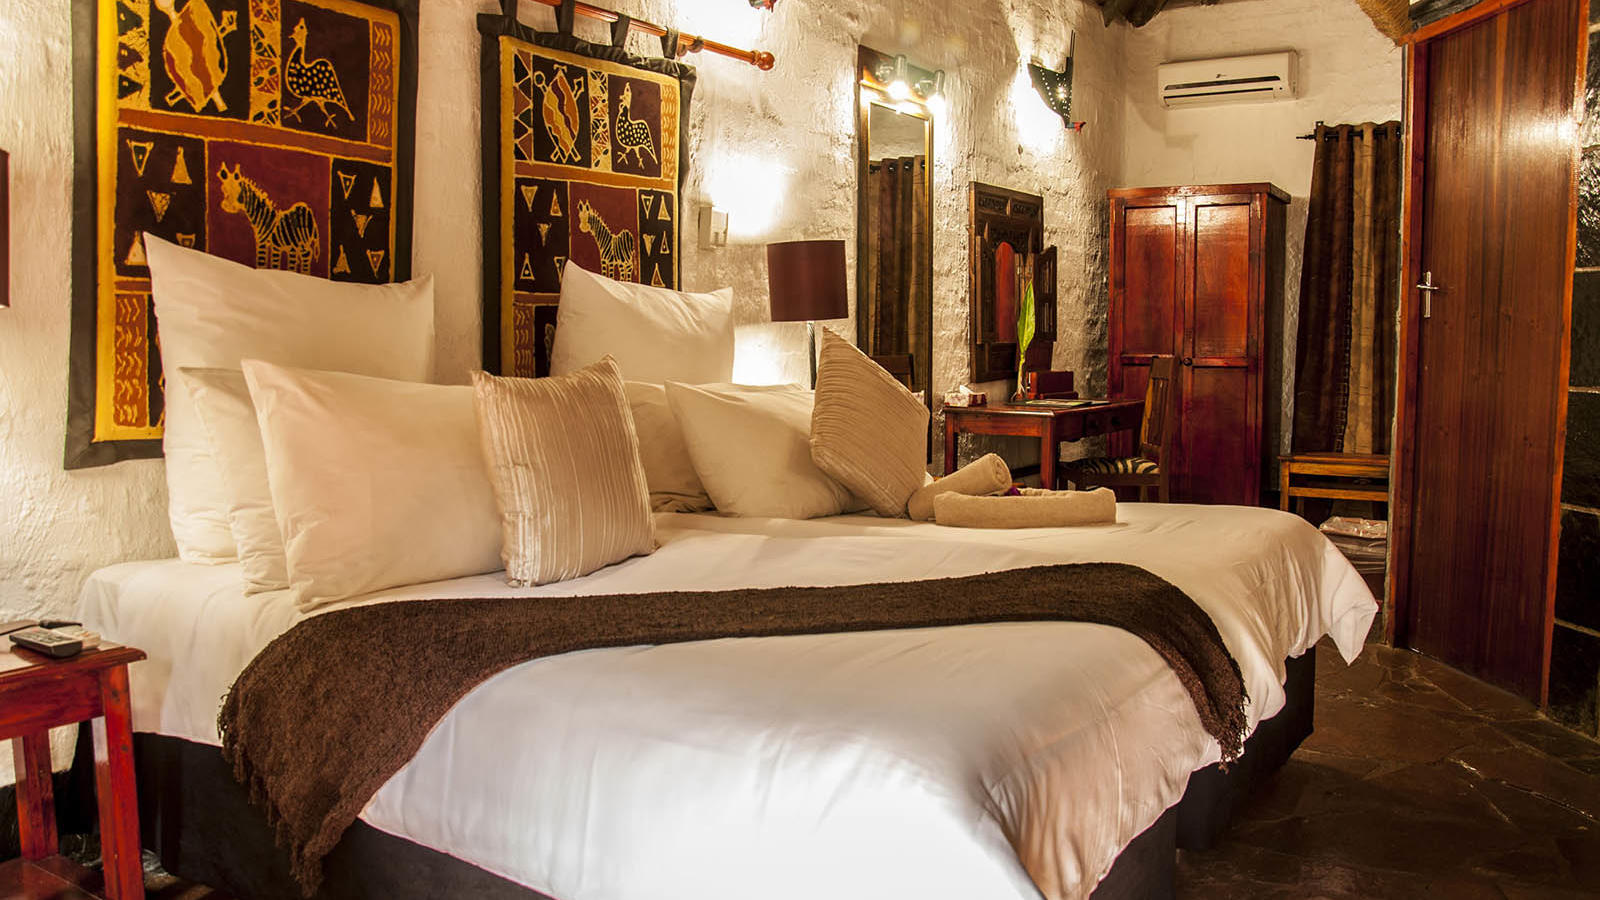 Deluxe room at Kedar Heritage Lodge by Warwick